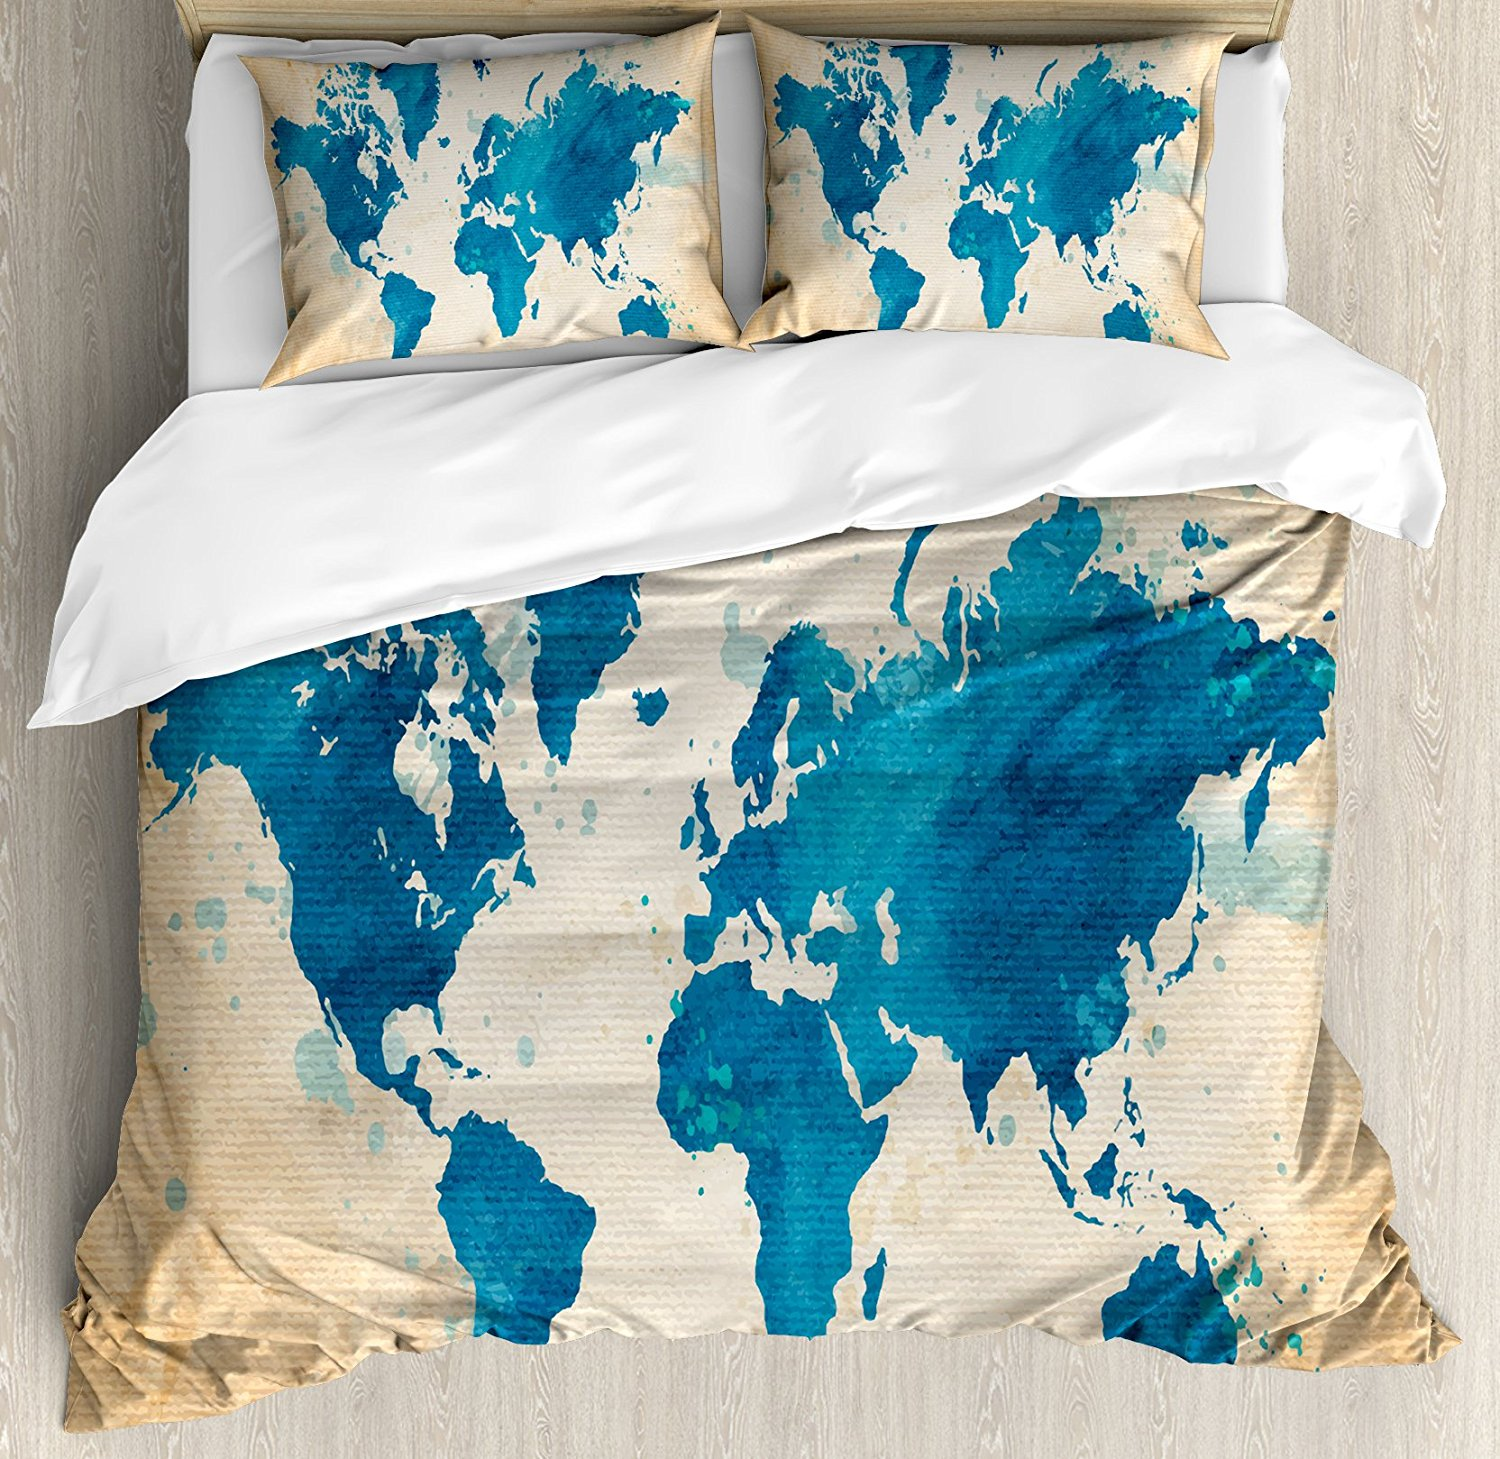 Map duvet cover set artistic vintage world map with watercolor map duvet cover set artistic vintage world map with watercolor brushstrokes on old backdrop print decorative 4 piece bedding set in bedding sets from home gumiabroncs Choice Image